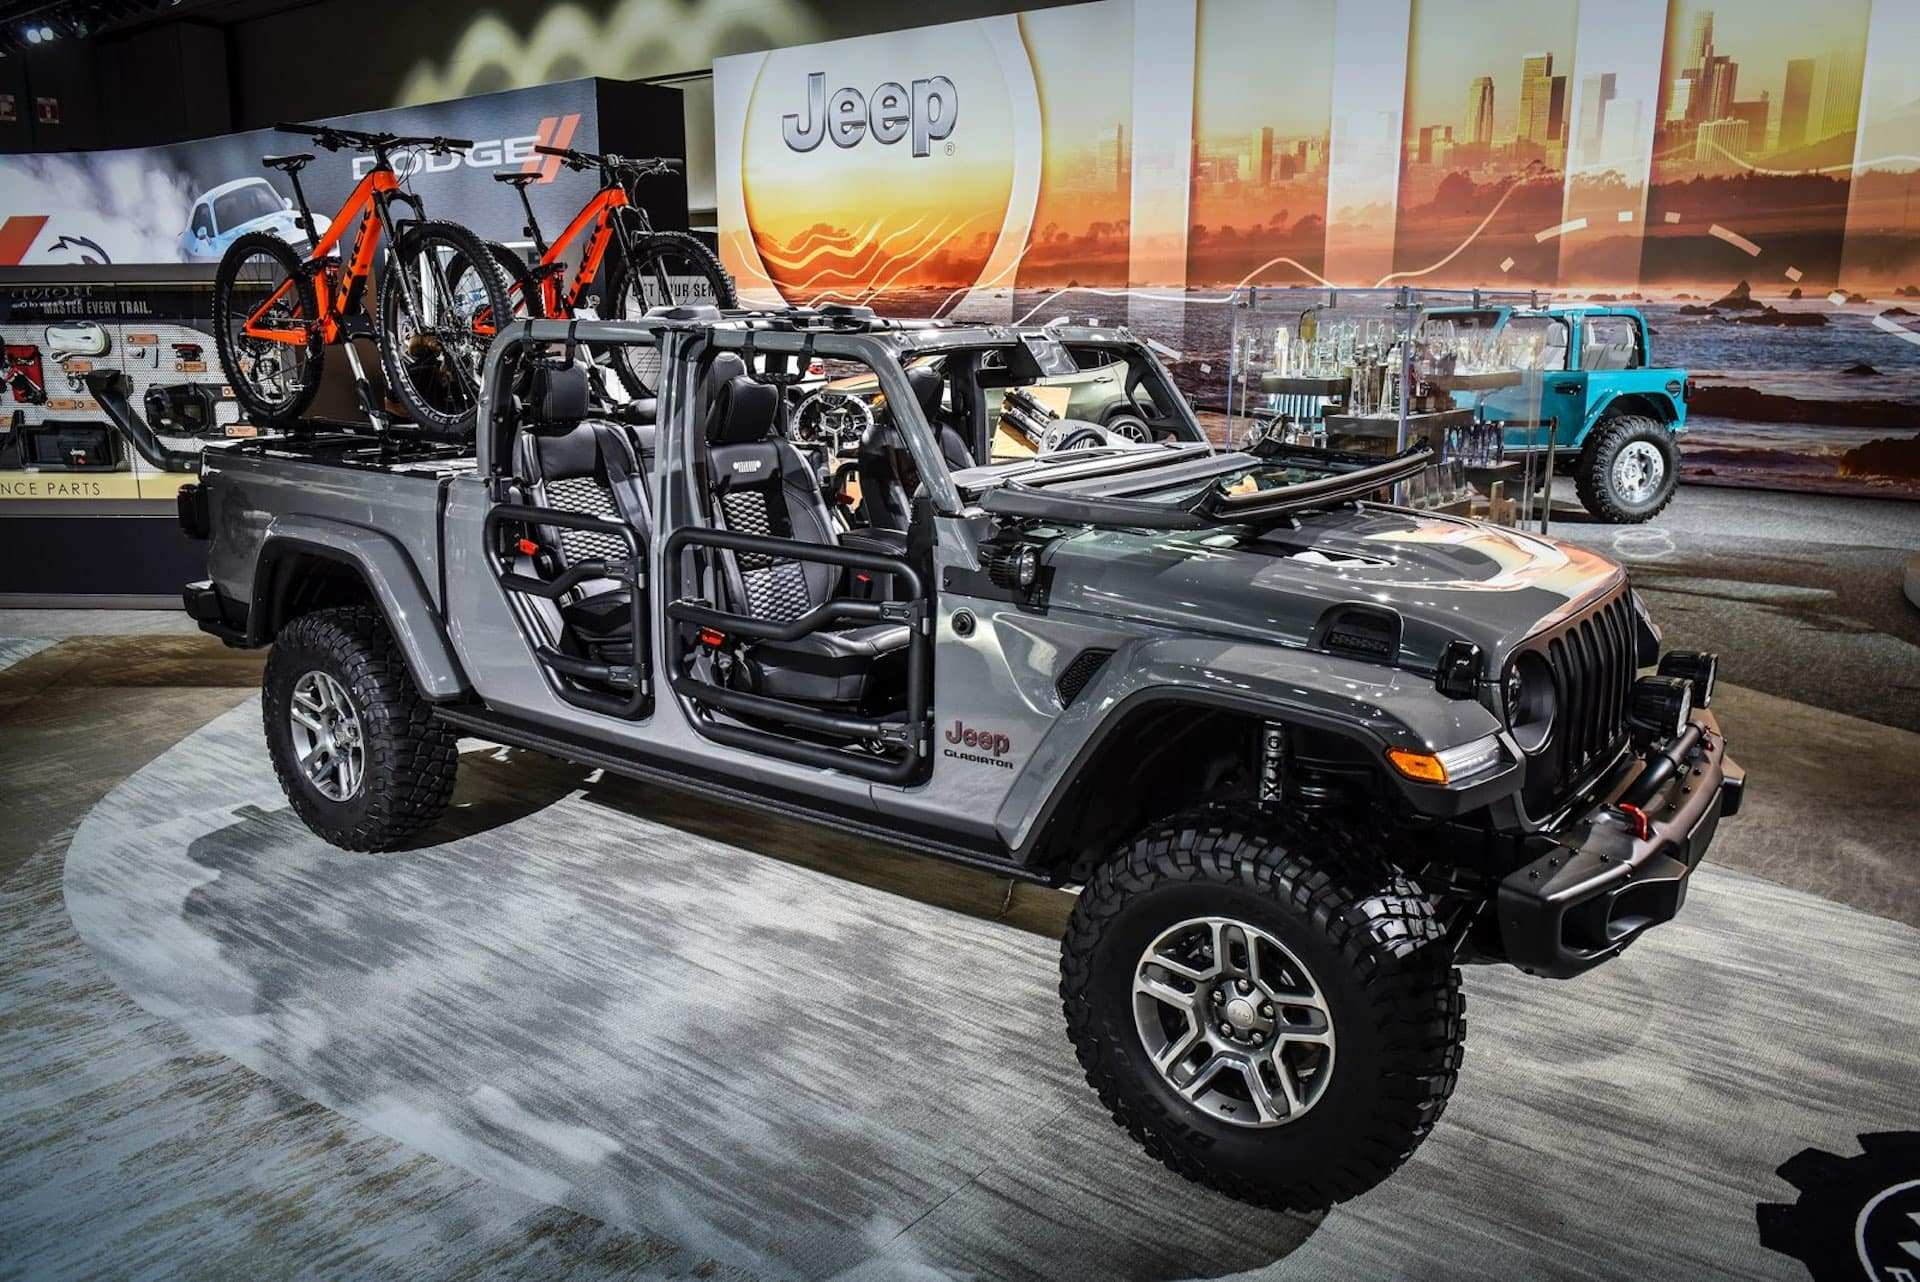 78 All New 2020 Jeep Gladiator Msrp Concept